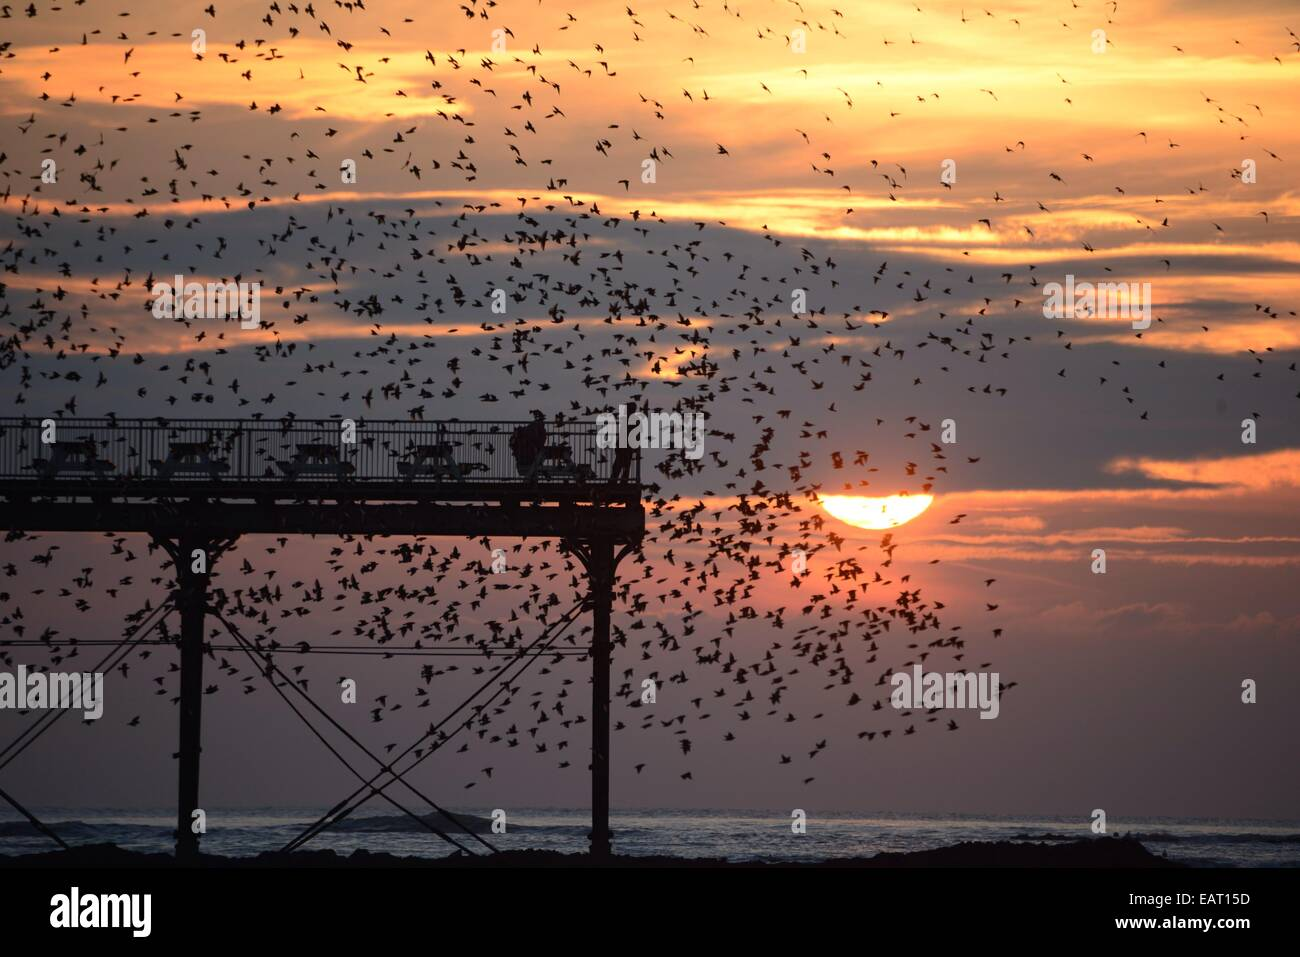 Aberystwyth, Wales, UK. 20th November, 2014. Starlings roosting on Aberystwyth  pier at sundown. The dramatic murmuration Stock Photo